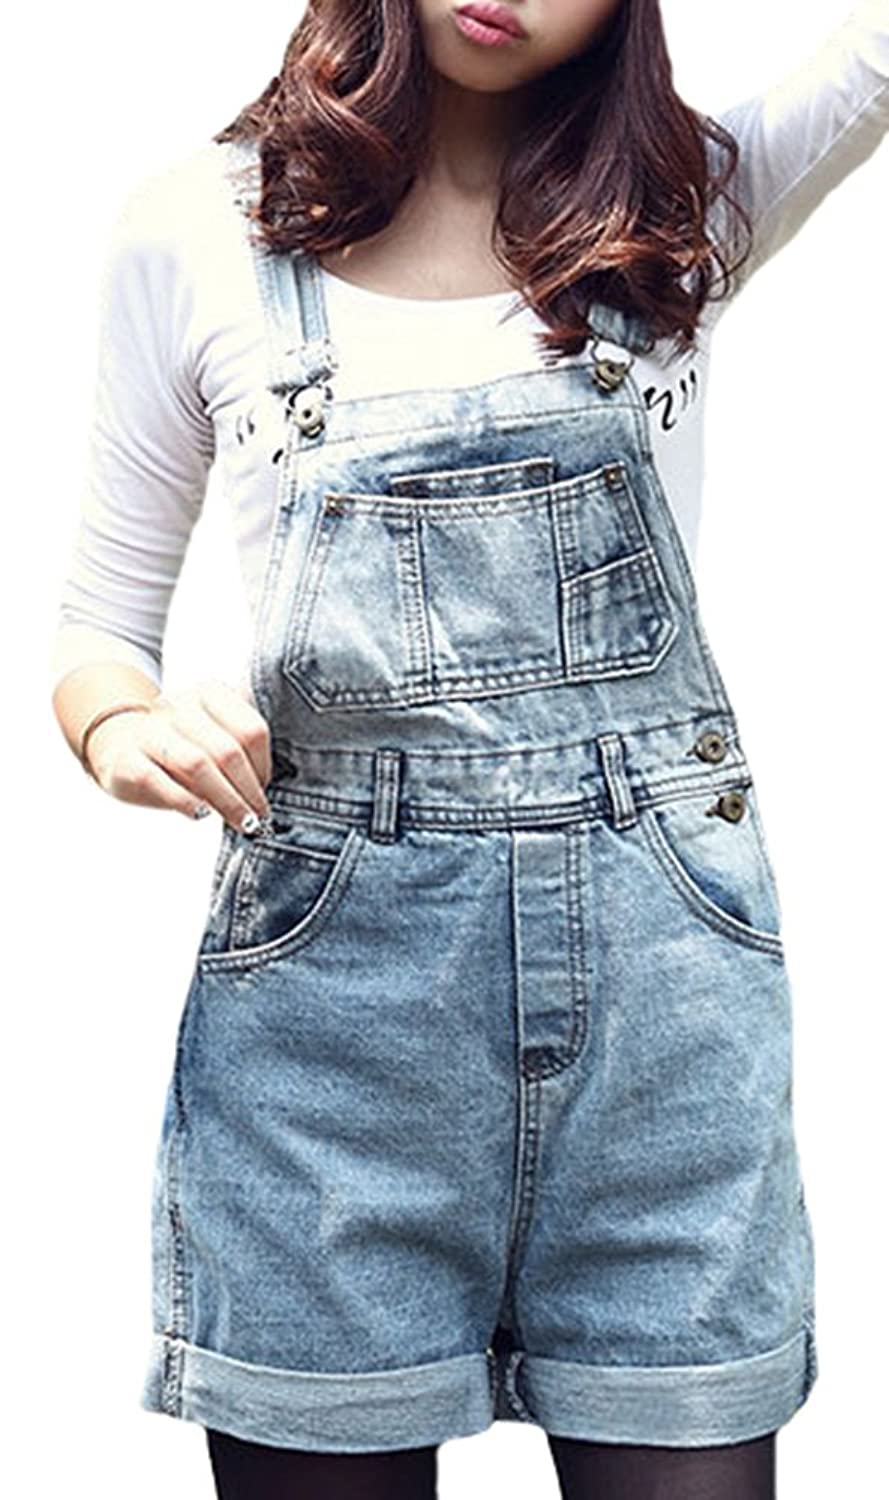 IDIFU Women's Adjustable Strap Denim Overalls Shorts Jeans Bib Shortalls